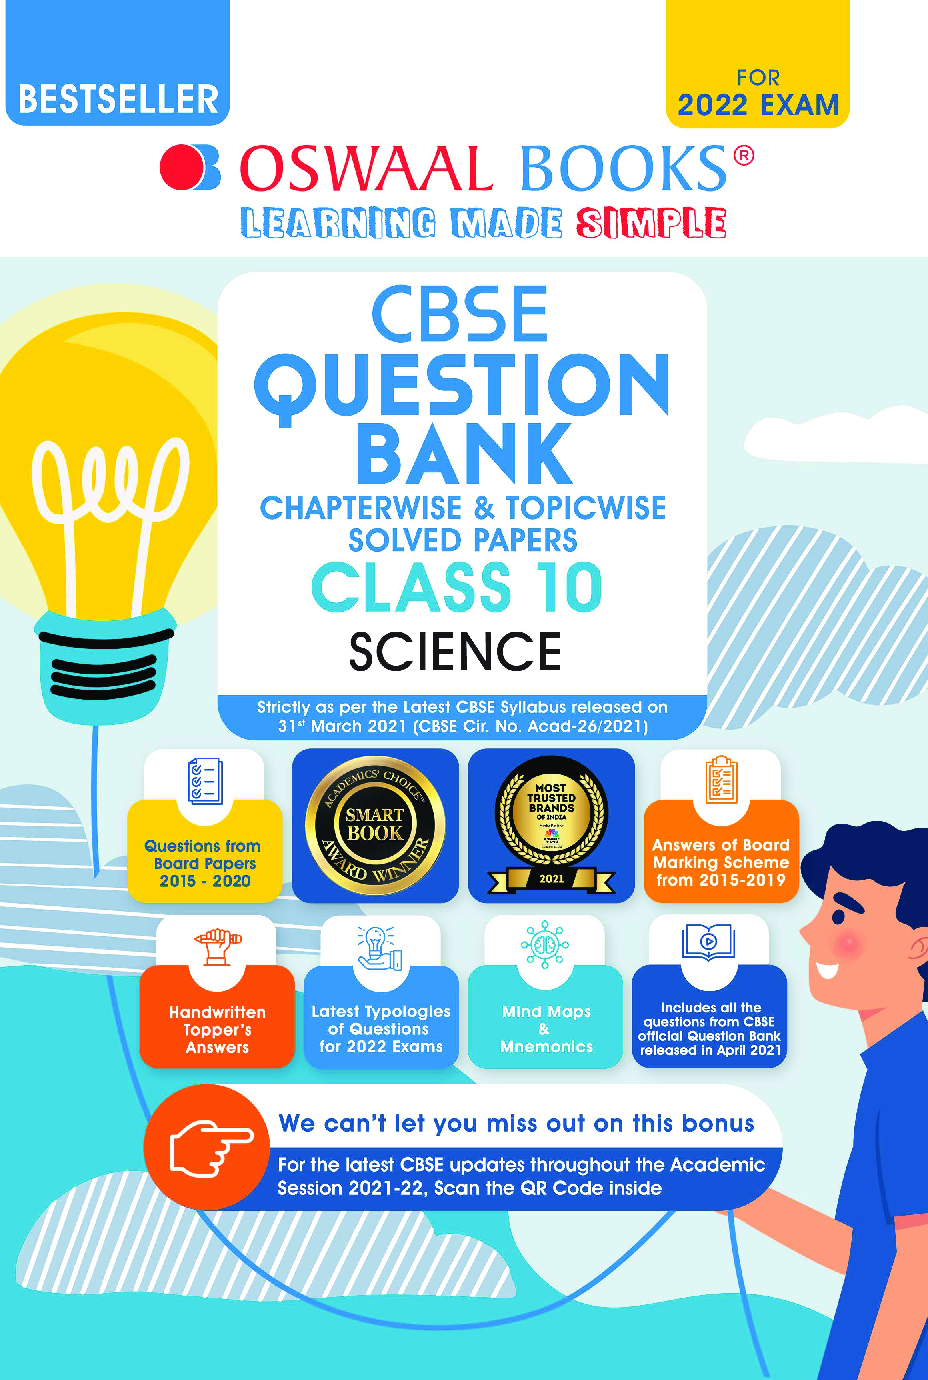 Oswaal CBSE Question Bank Class 10 Science Book Chapterwise & Topicwise Includes Objective Types & MCQ's (For 2022 Exam) - Page 1